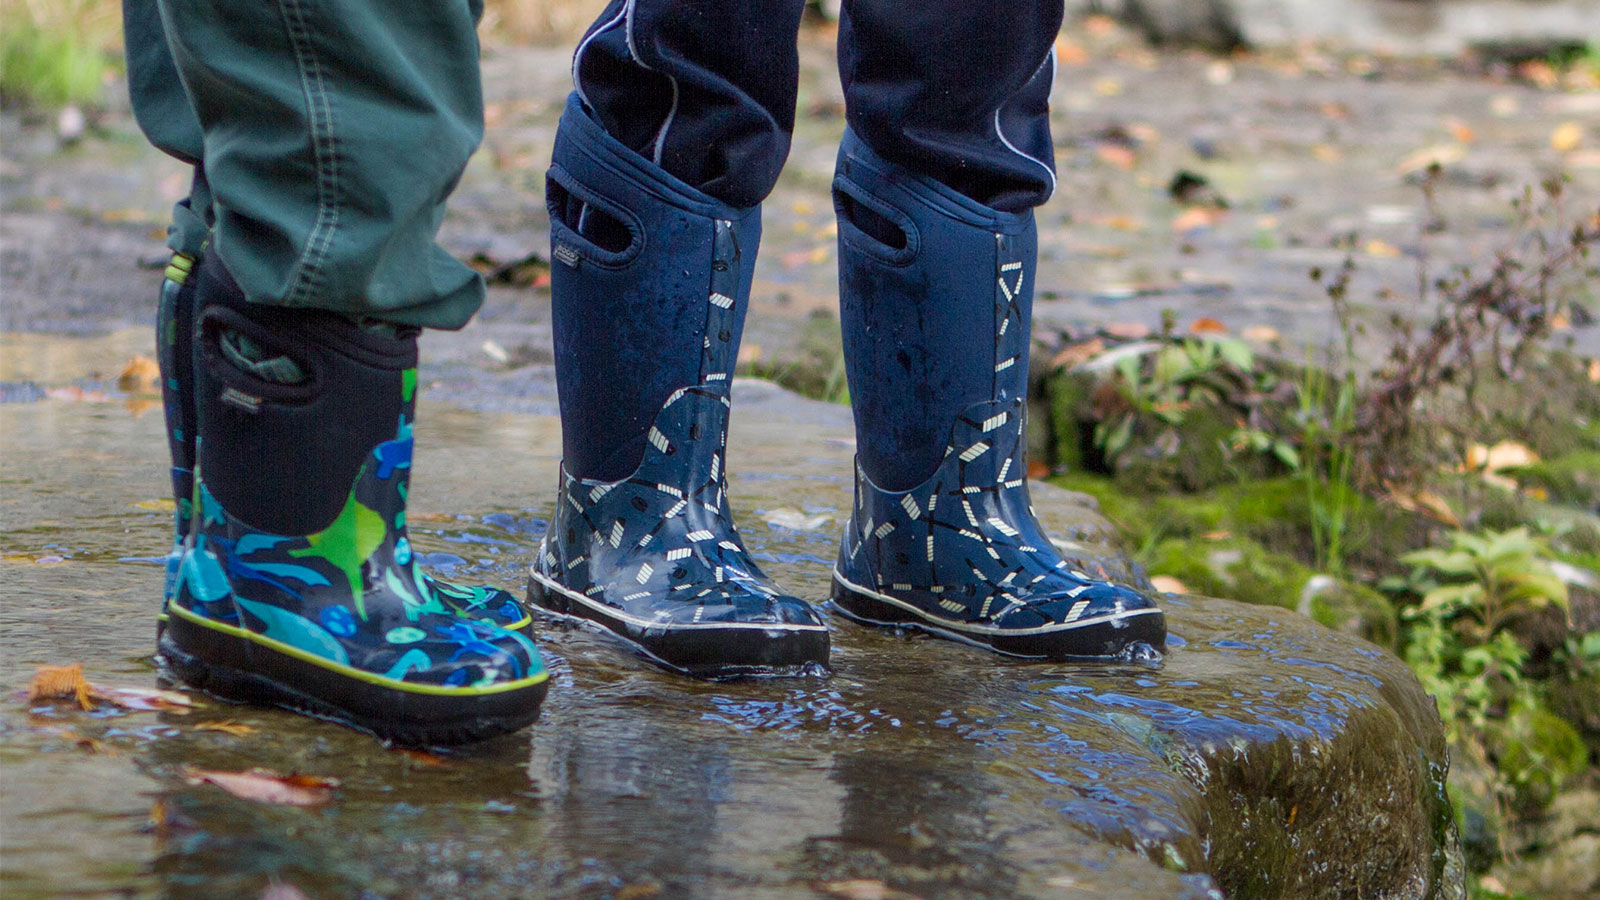 Gear Review Bogs Kids Winter Snow Boots Wandering Wagars